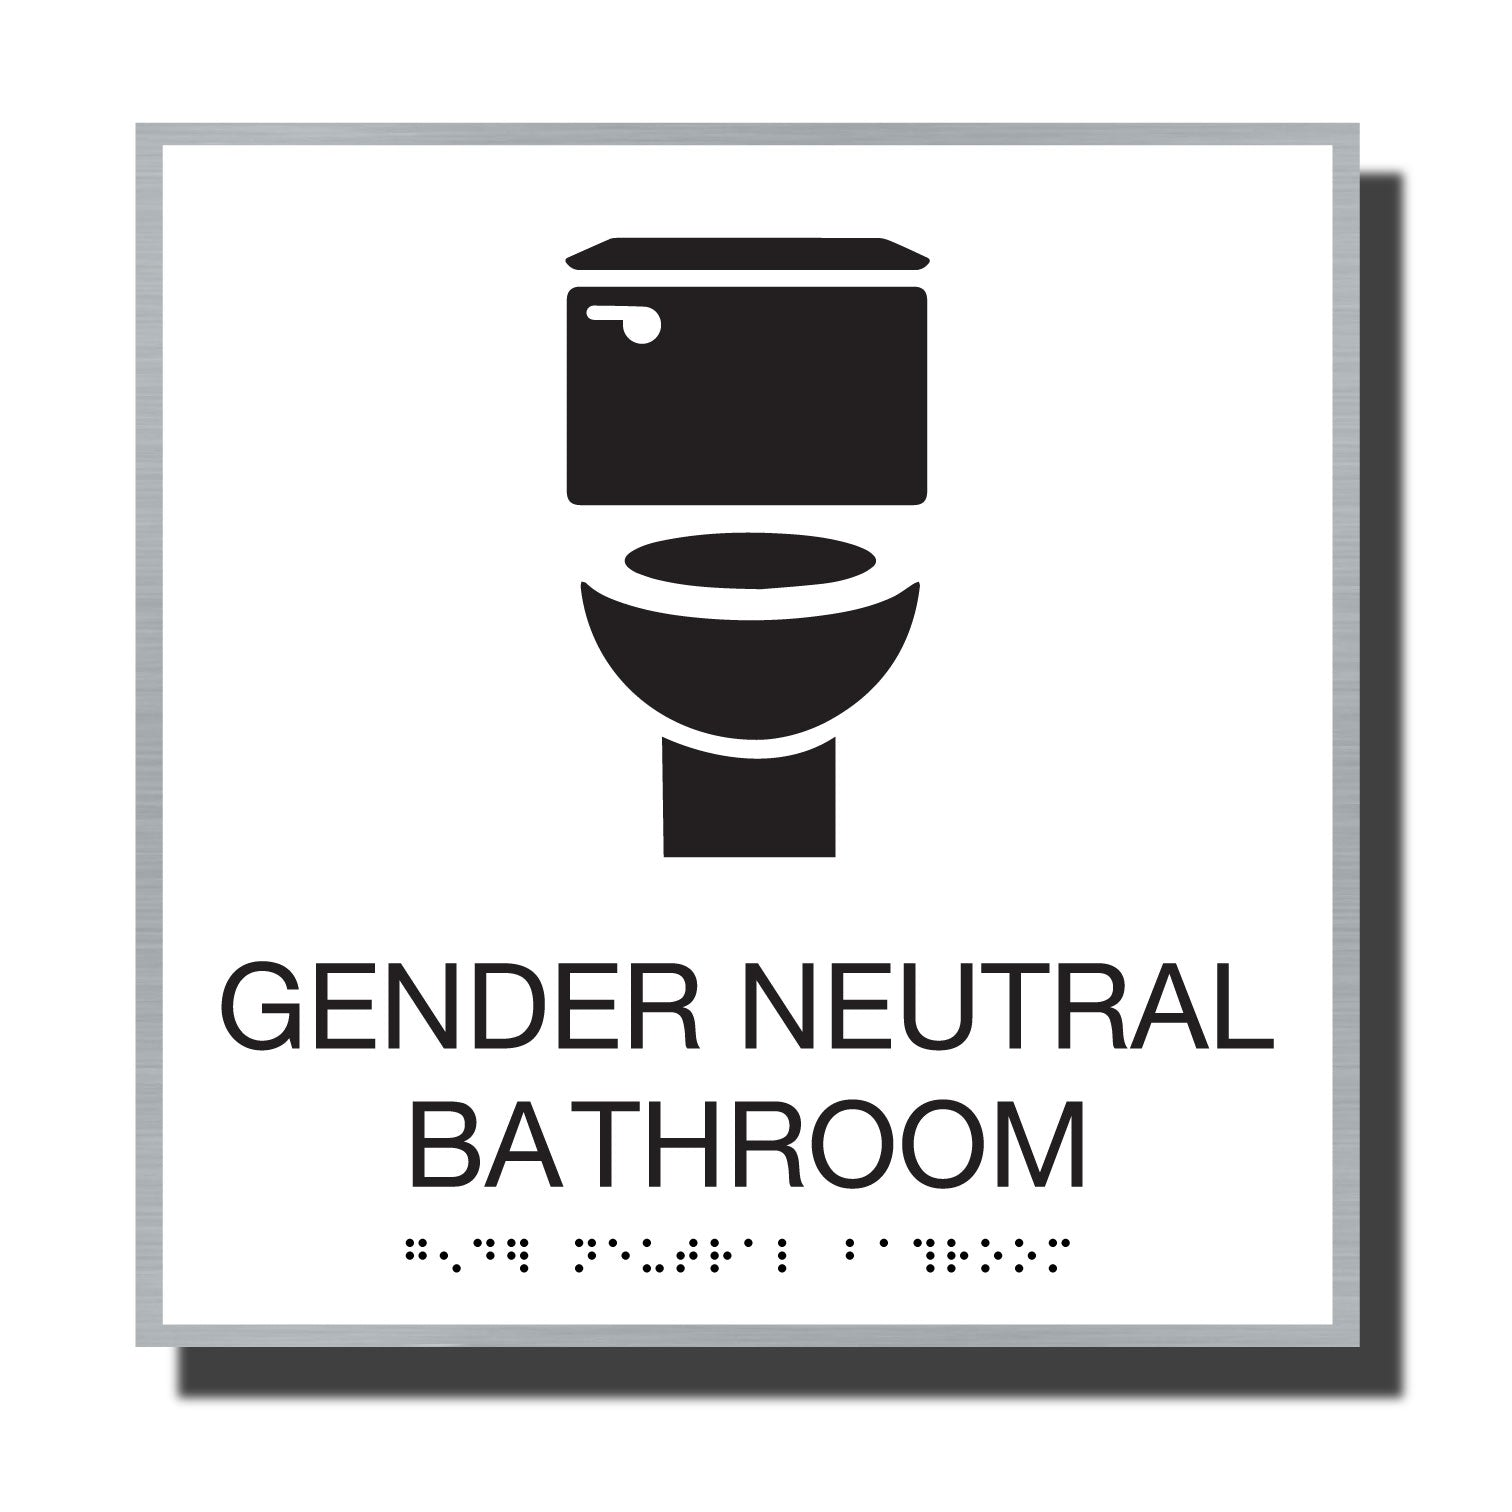 ADA Sterling Gender Neutral - NapADASigns - ADA Gender Neutral Bathroom Sign - Aluminum - Sterling Collection - napadasigns